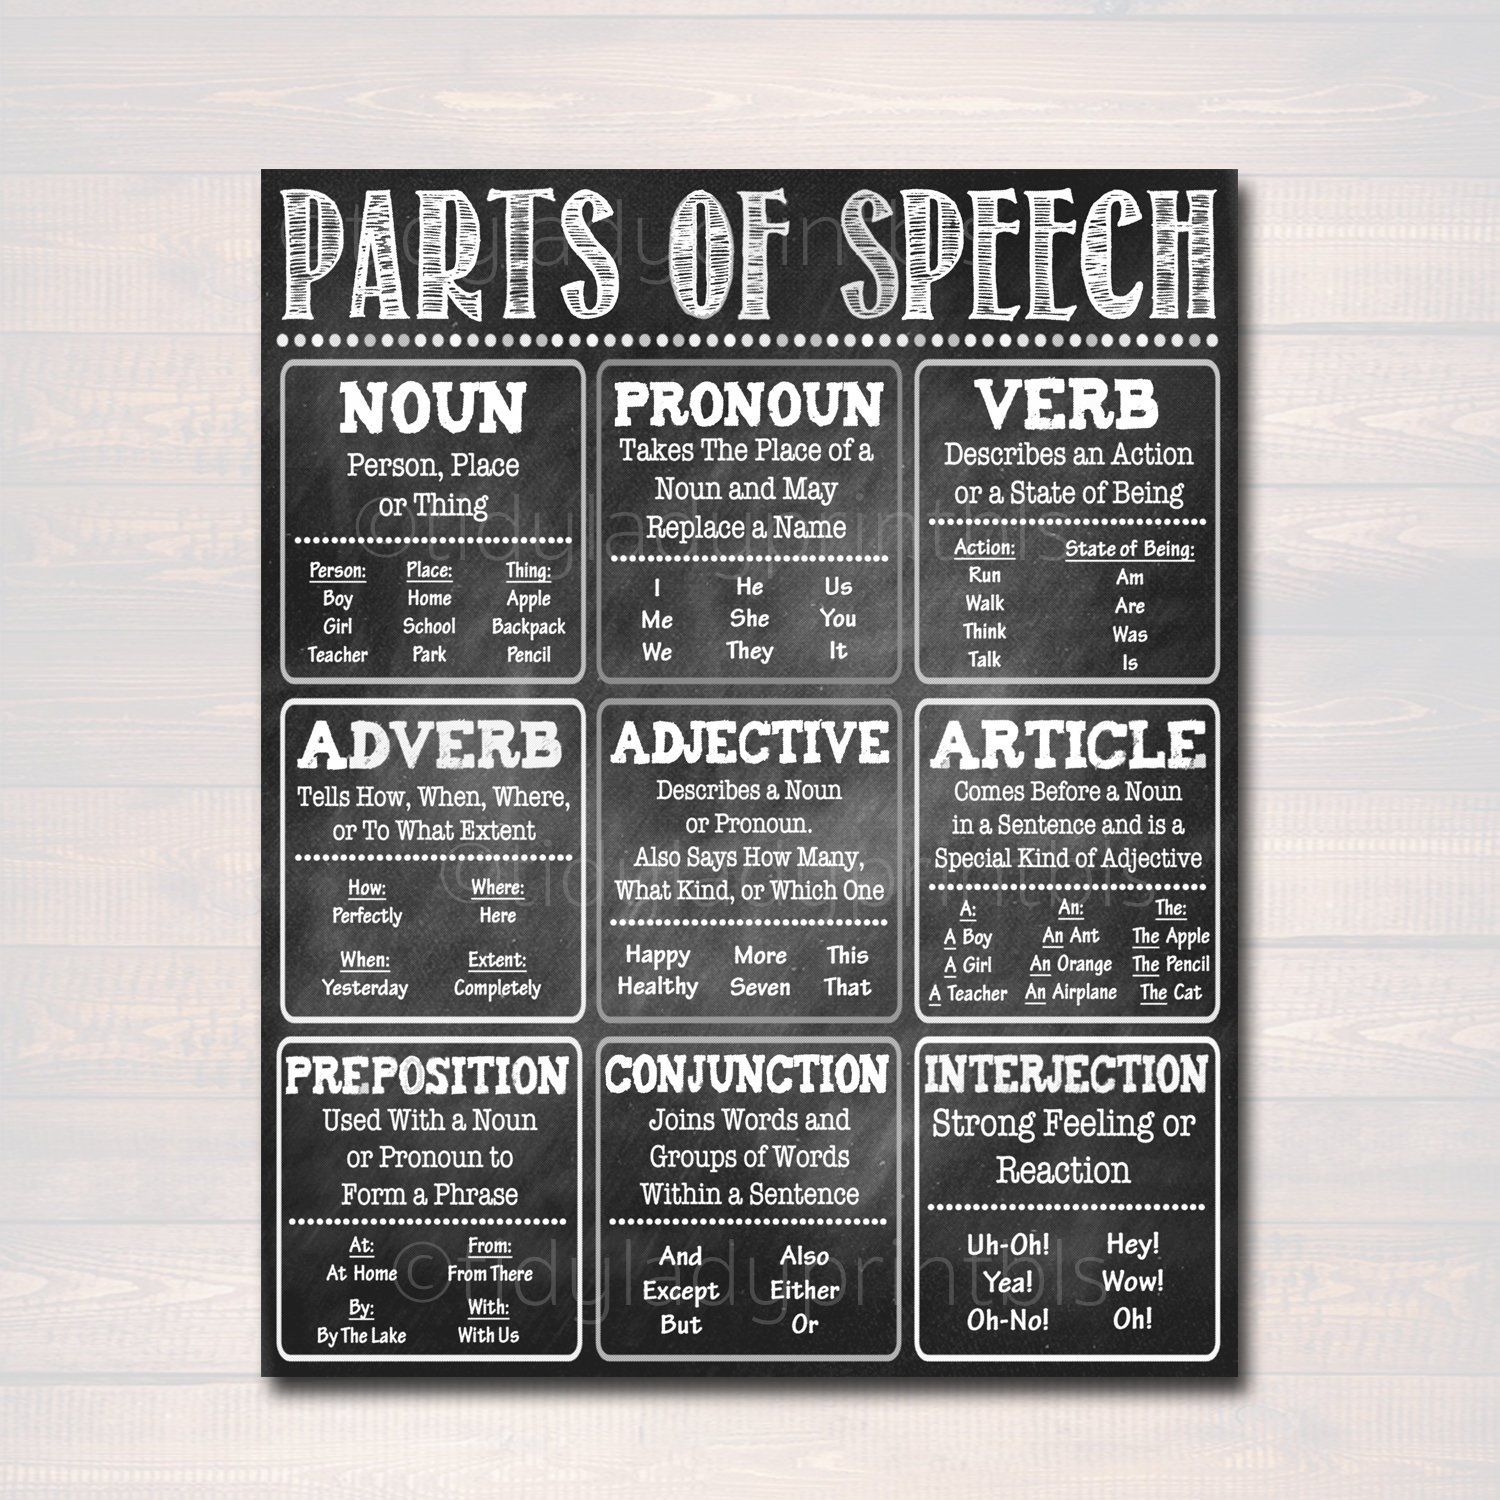 English Grammar Parts of Speech Poster, Classroom Grammar Poster, Teacher Printables Classroom Decor, High School English INSTANT DOWNLOAD is part of Grammar posters, Teacher printable, Parts of speech, English classroom decor, English grammar, High school english -  Prints Of Love will handle the rest! For every order you place, Prints of Love plants a tree in your name  It is their way of creating a net positive environmental impact with each order! They are proud to be an official Reforestation Partner with their friends at One Tree Planted                                                   PLEASE NOTE Files are for PERSONAL USE ONLY  You may not copy, forward, share, sell or distribute the files  Mass production, file sharing and commercial use of these files are strictly prohibited  Copyright 2019 TidyLady Printables  All rights reserved